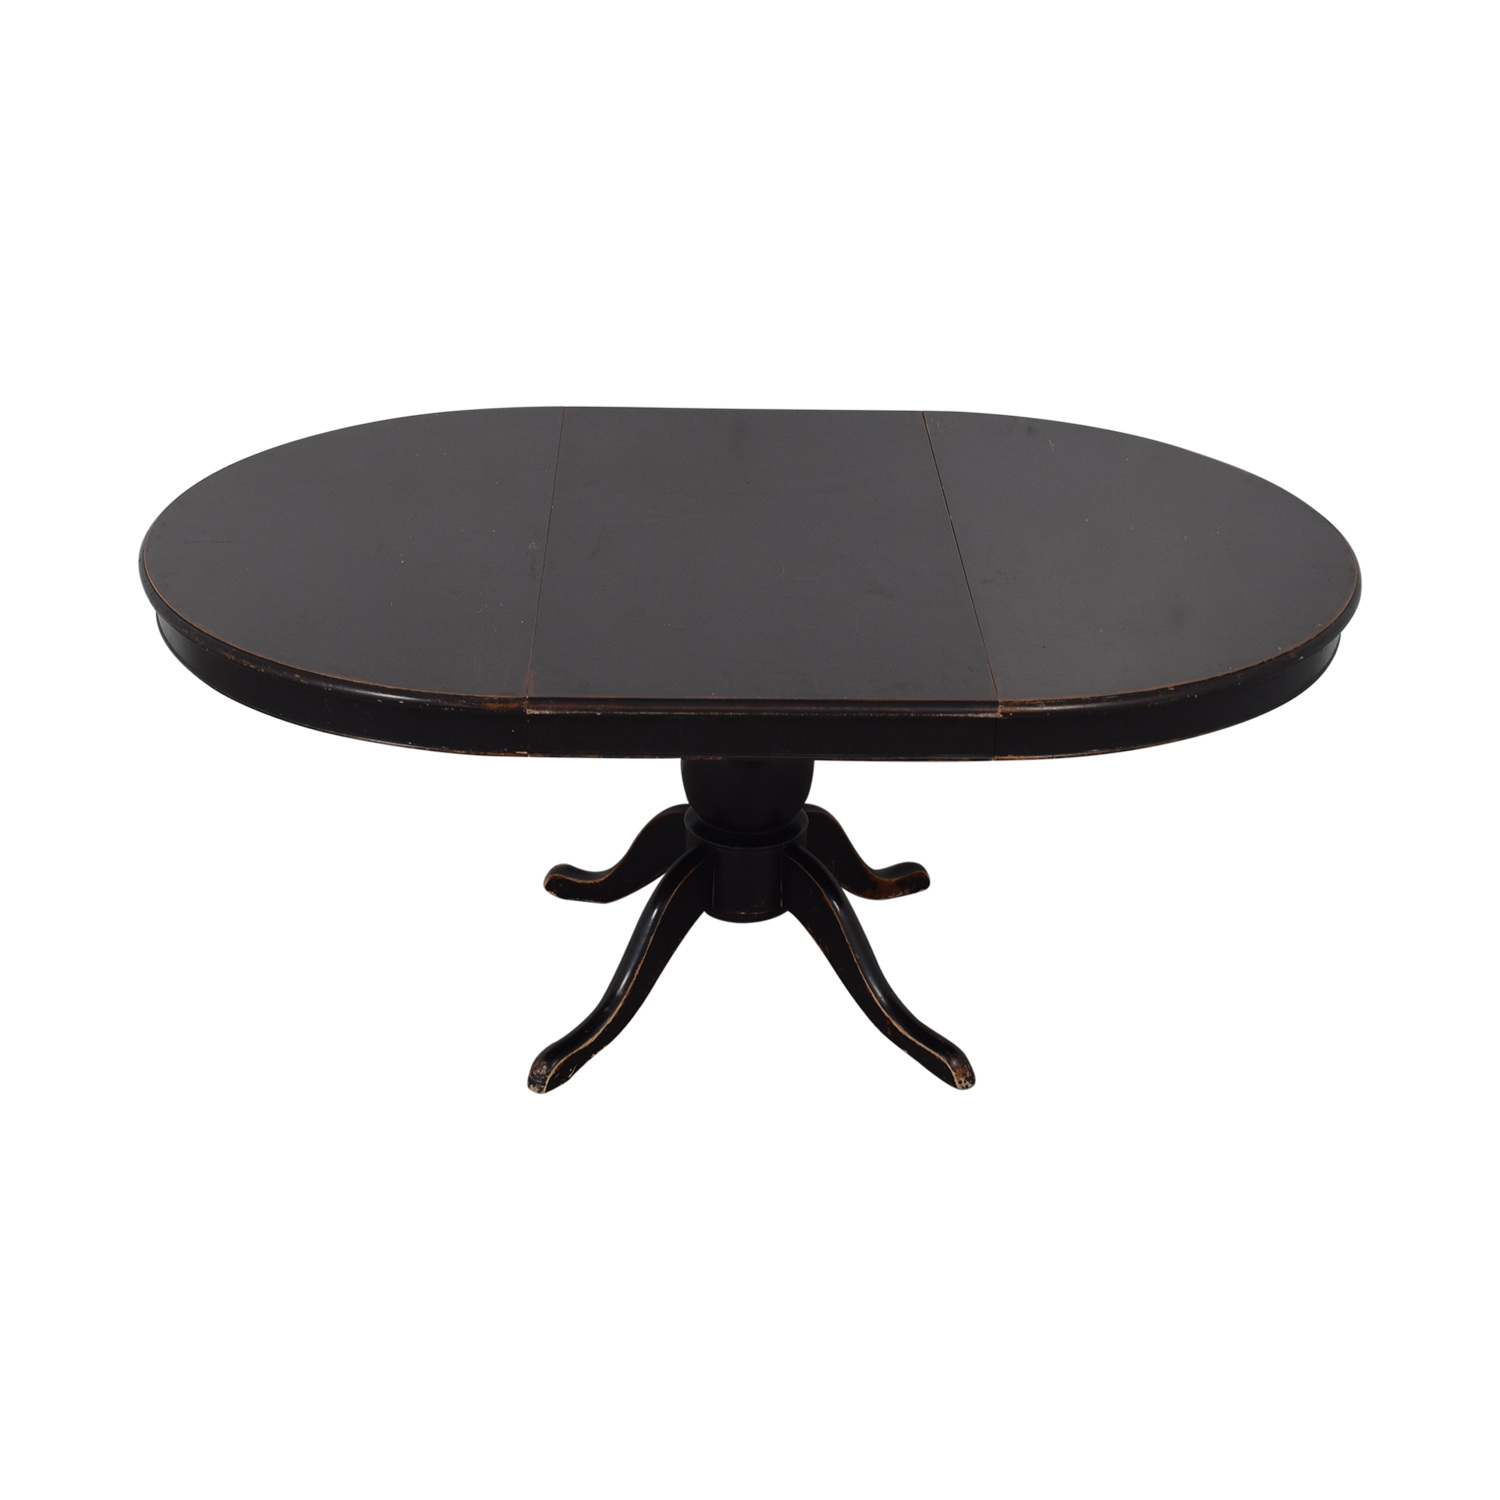 Crate & Barrel Crate & Barrel Avalon Round Extendable Dining Table black